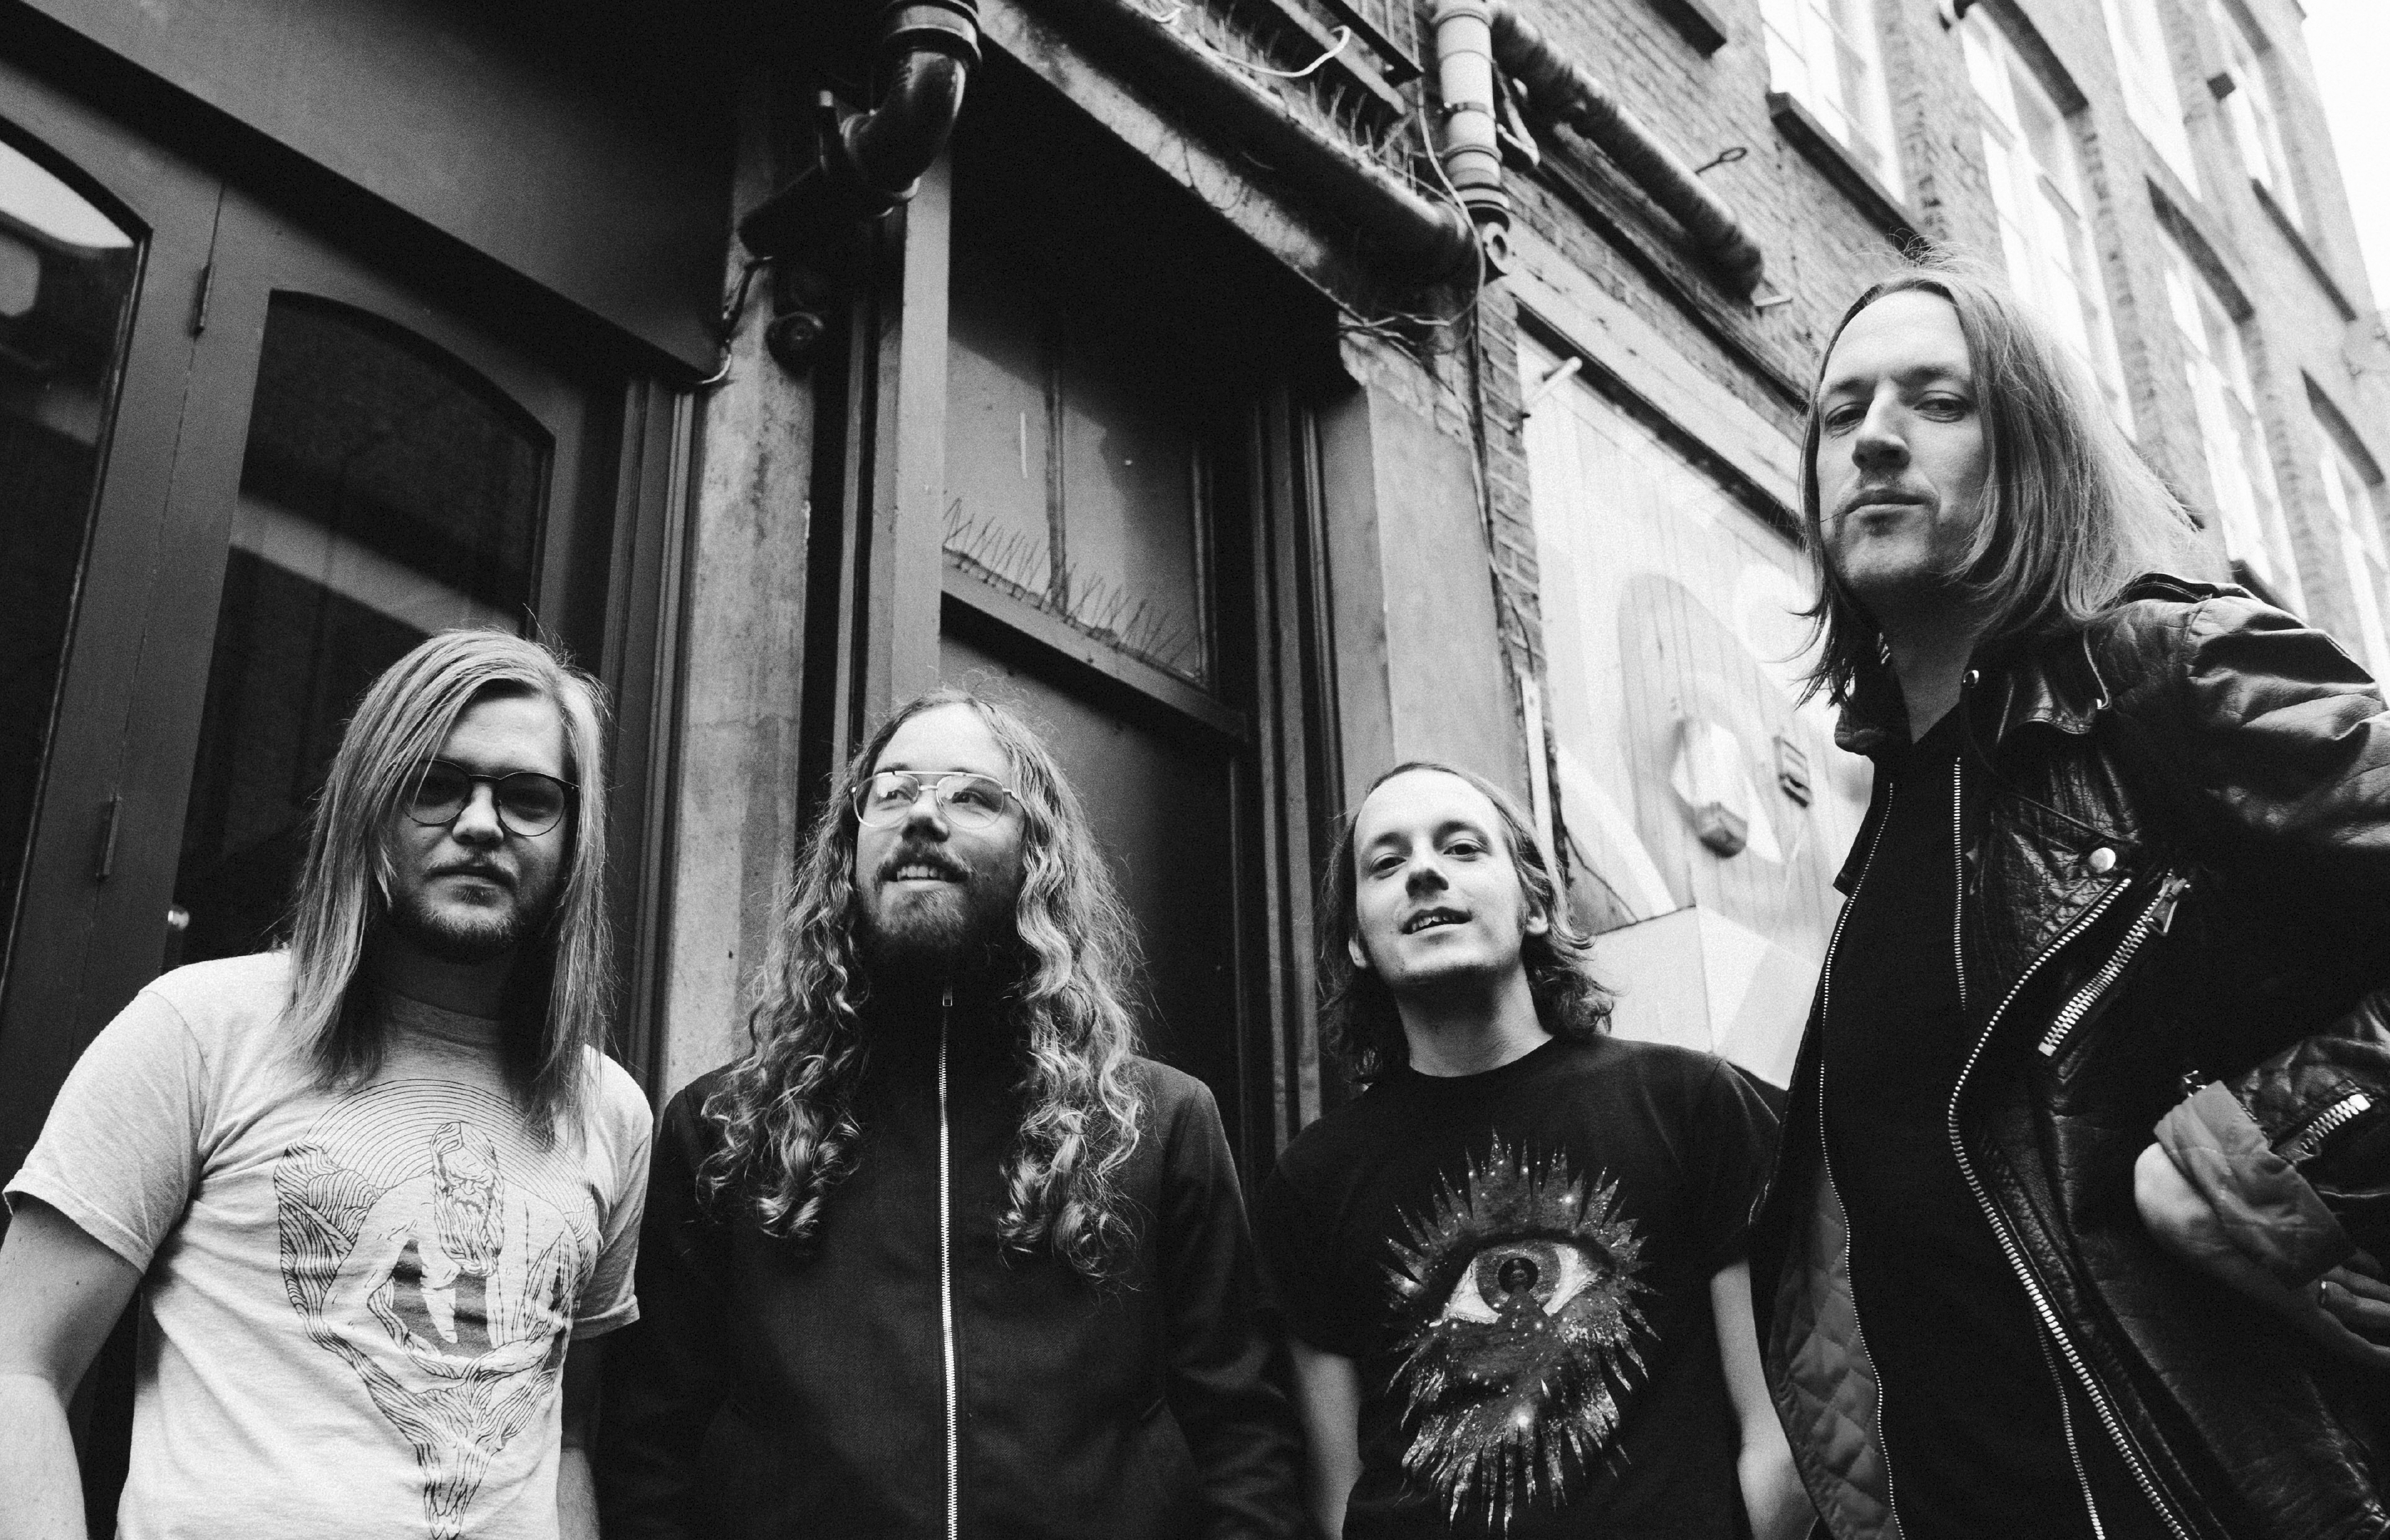 JIRM: Surge Ex Monumentis Streaming In Full At New Noise As Small Stone Release Day Nears